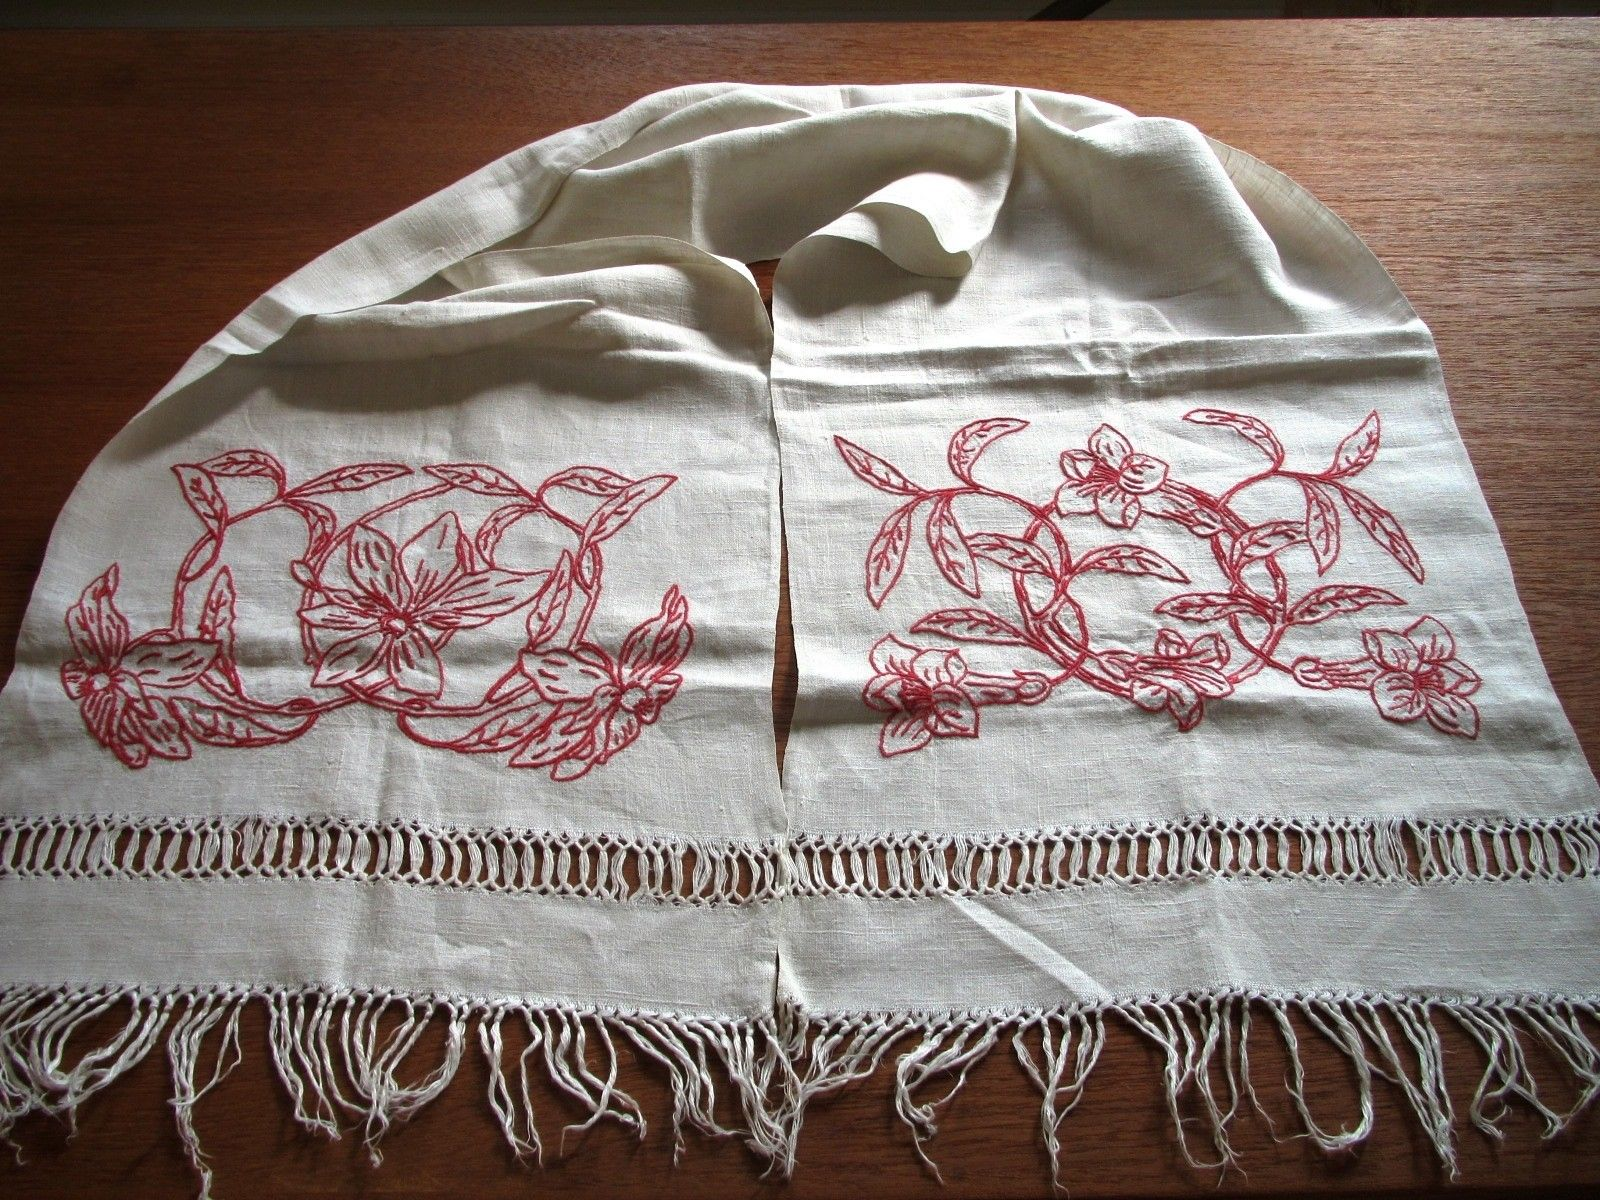 Antique Linen Runner Table Dresser Embroidered Scarf Red Hand Embroidery Redwork (L&T-348)